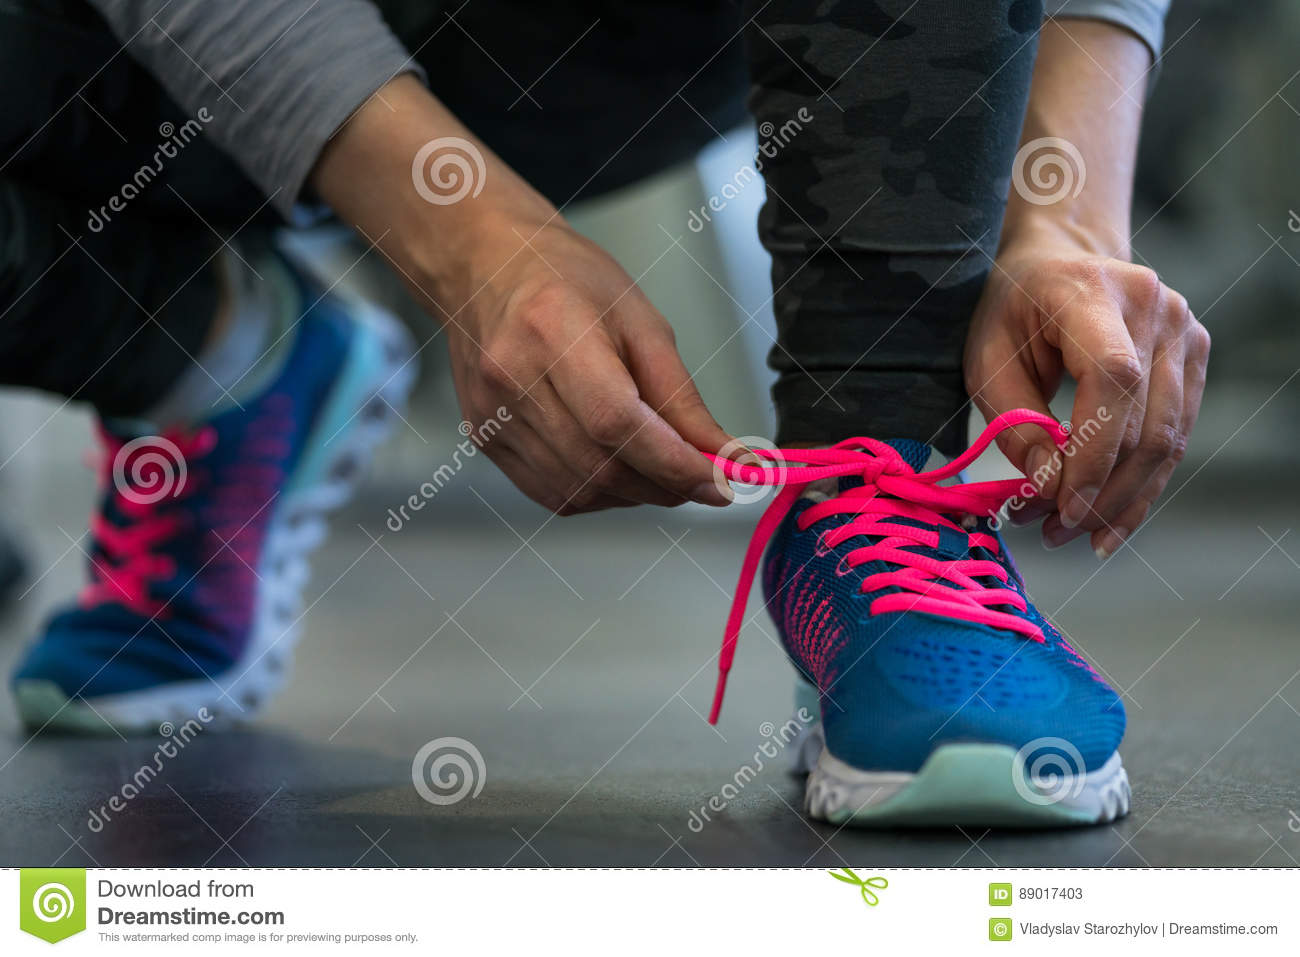 Running shoes - woman tying shoe laces. Woman getting ready for